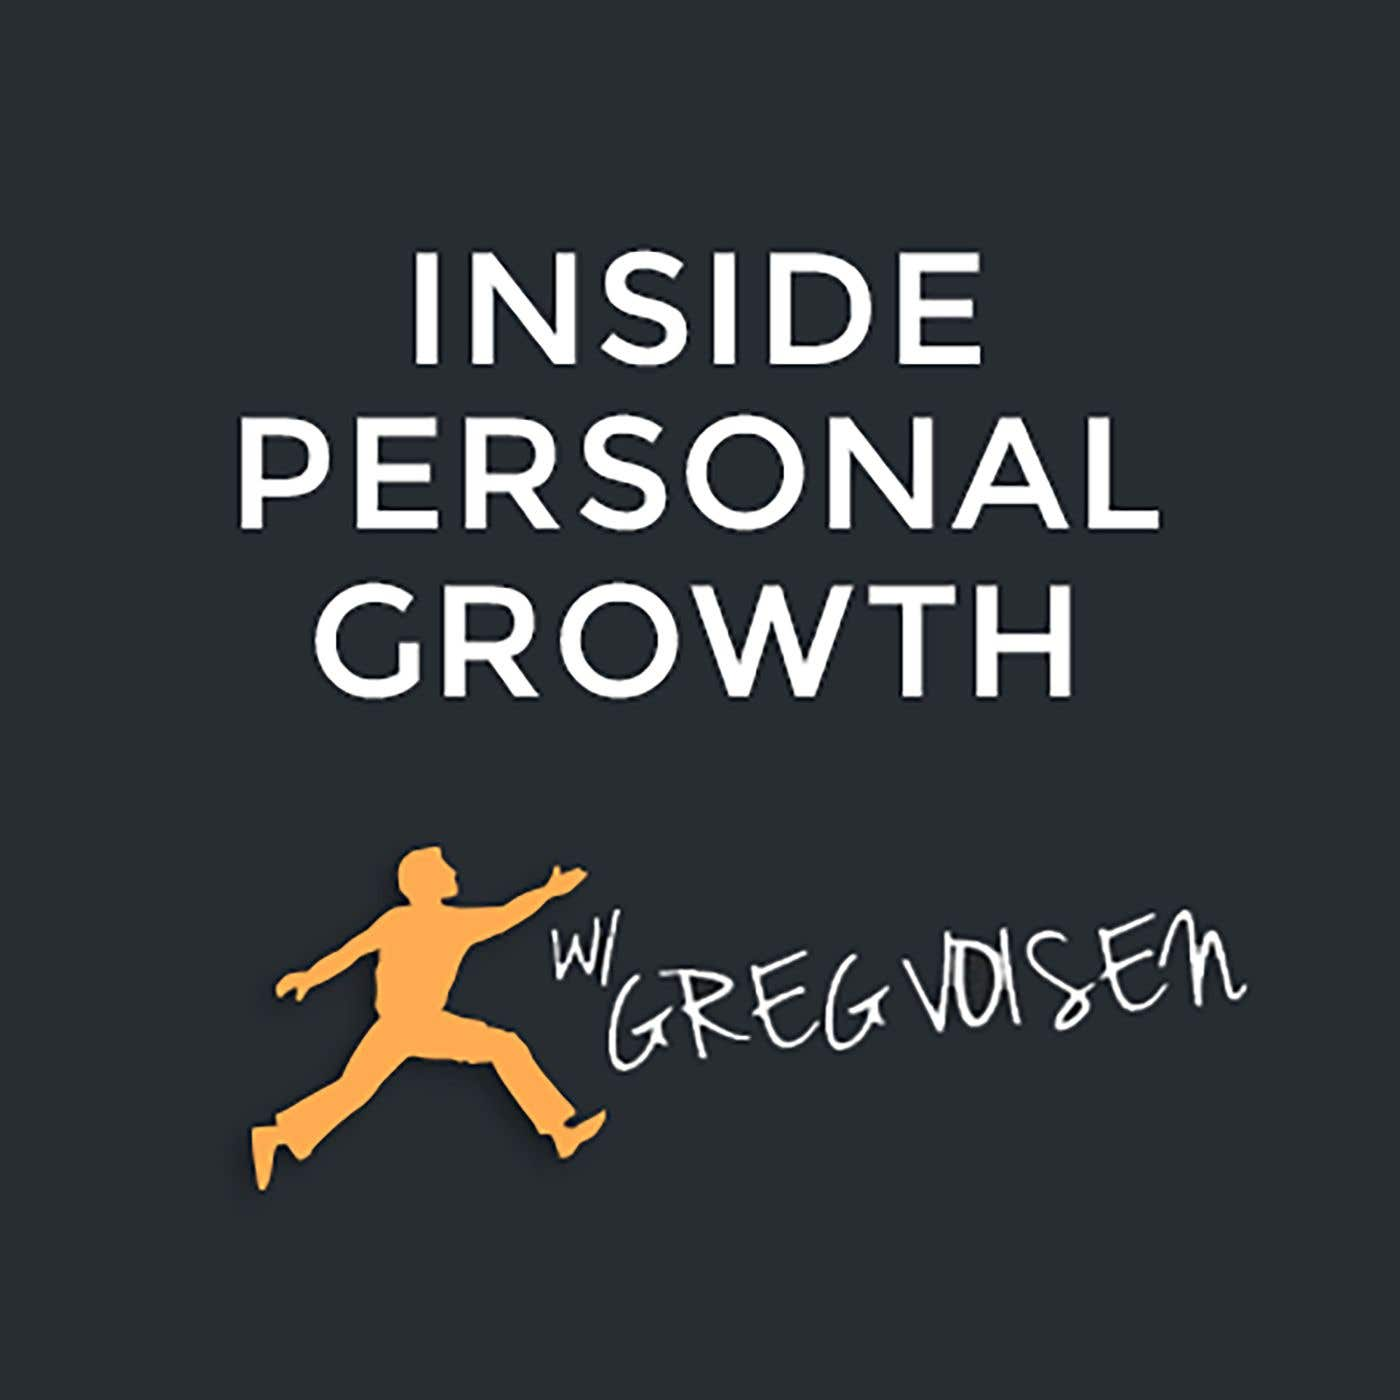 Thumbnail for Inside Personal Growth with Greg Voisen